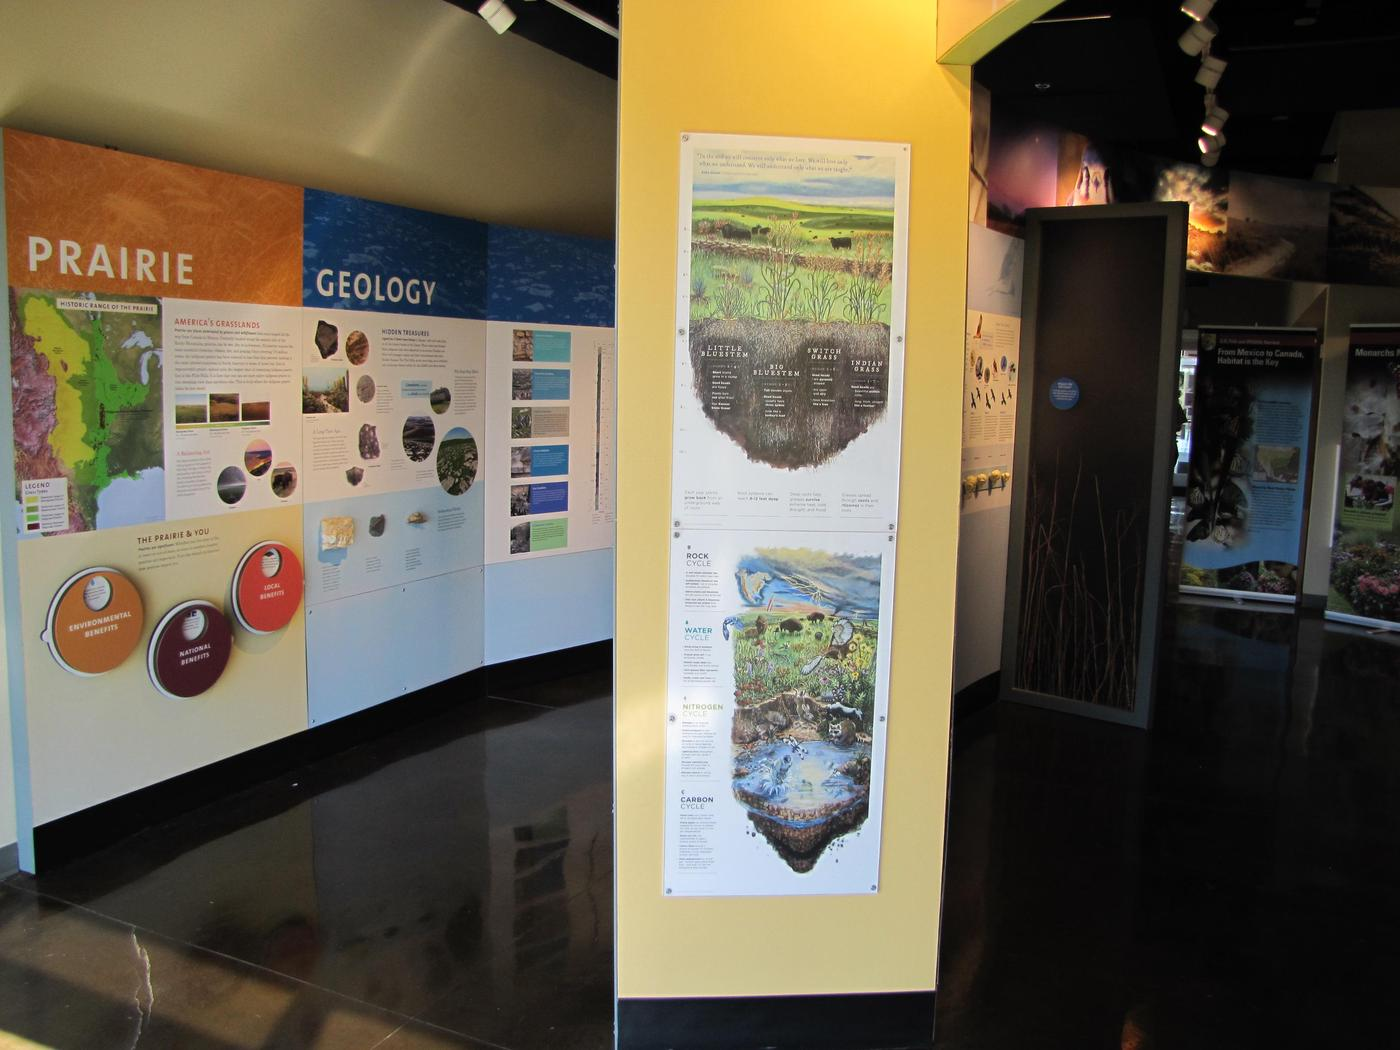 VC Interior 1Exhibits delve into the many factors shaping prairie ecology.